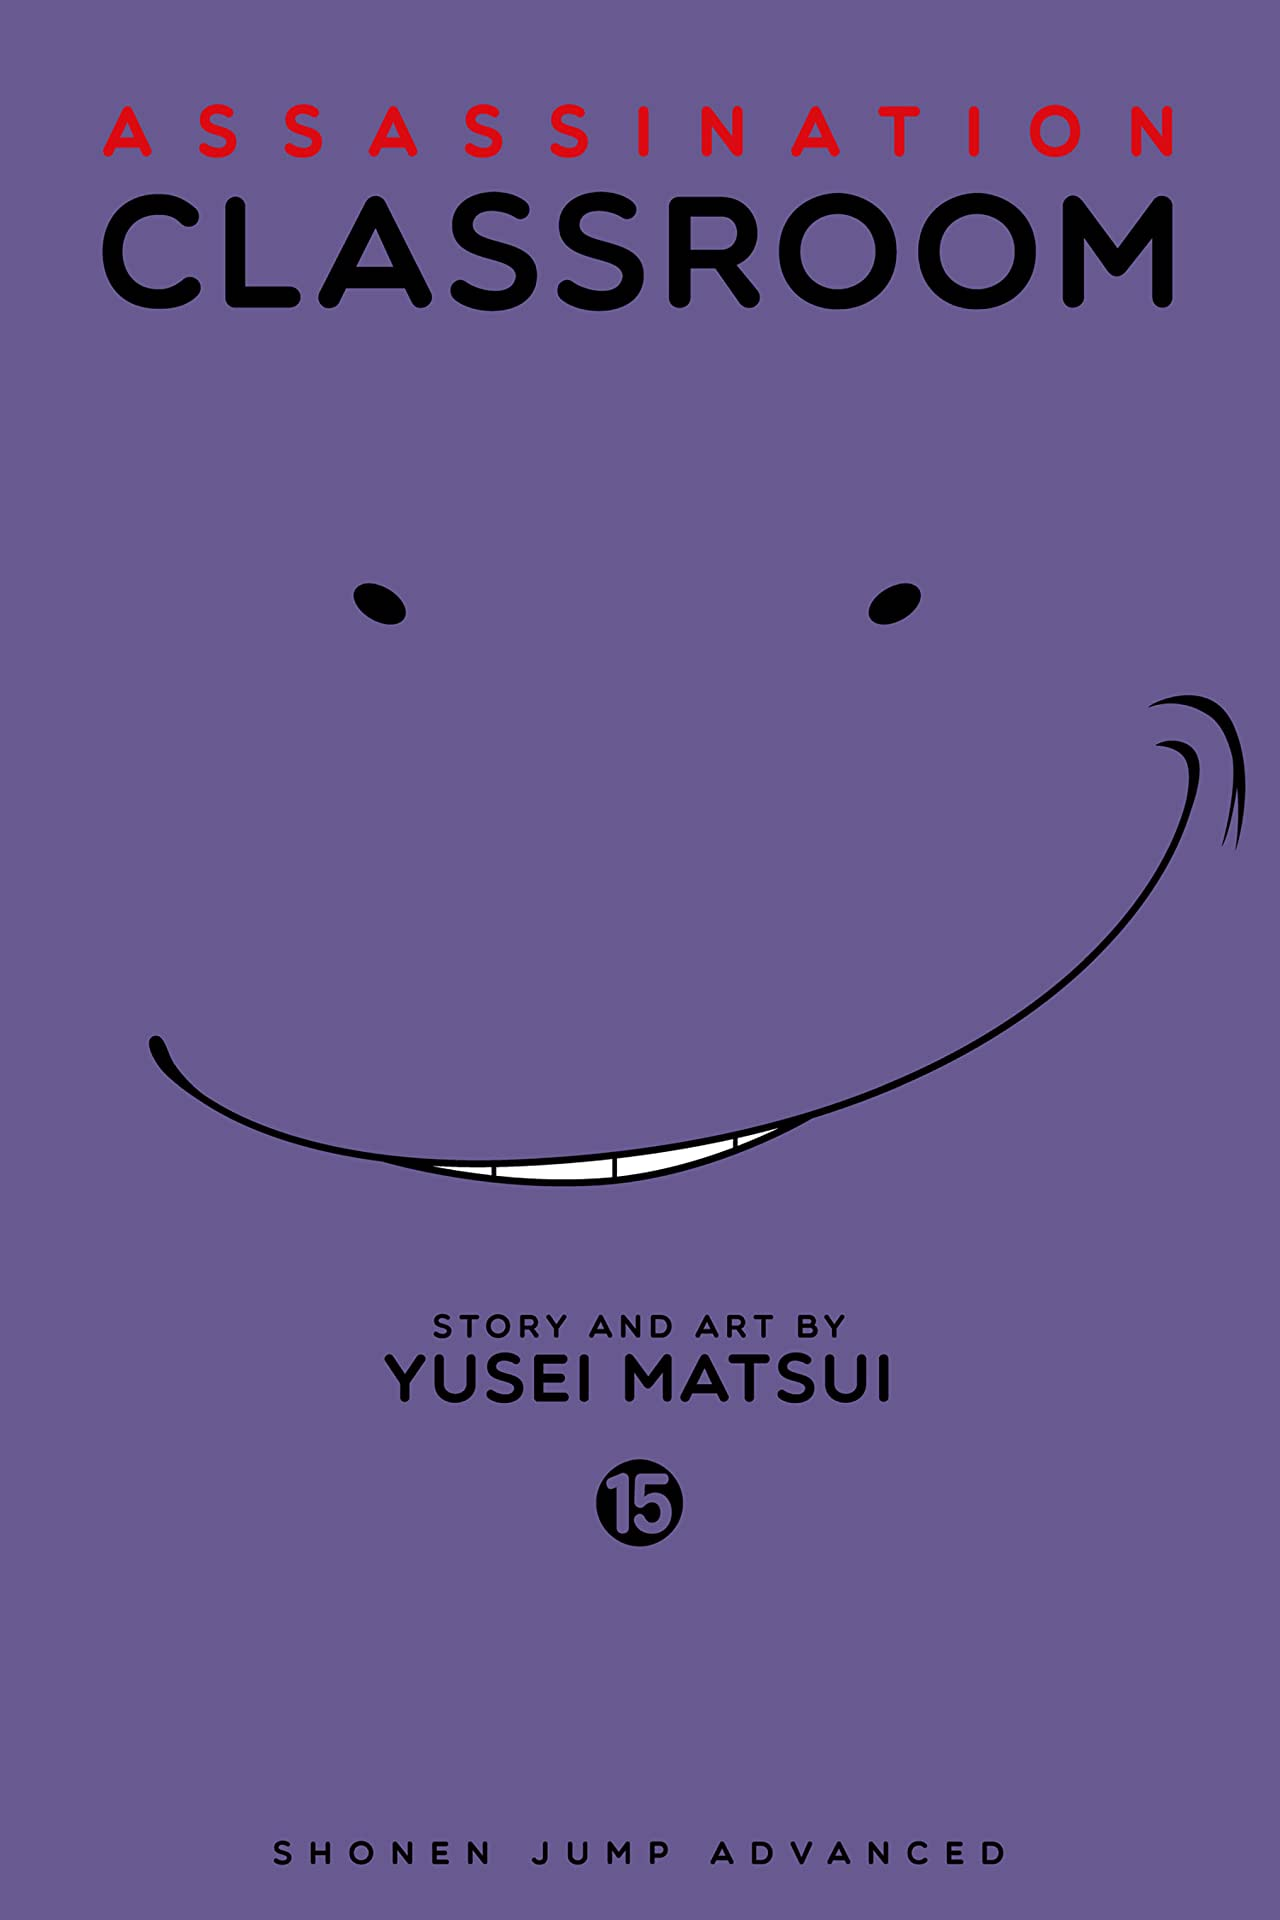 Assassination Classroom Vol. 15